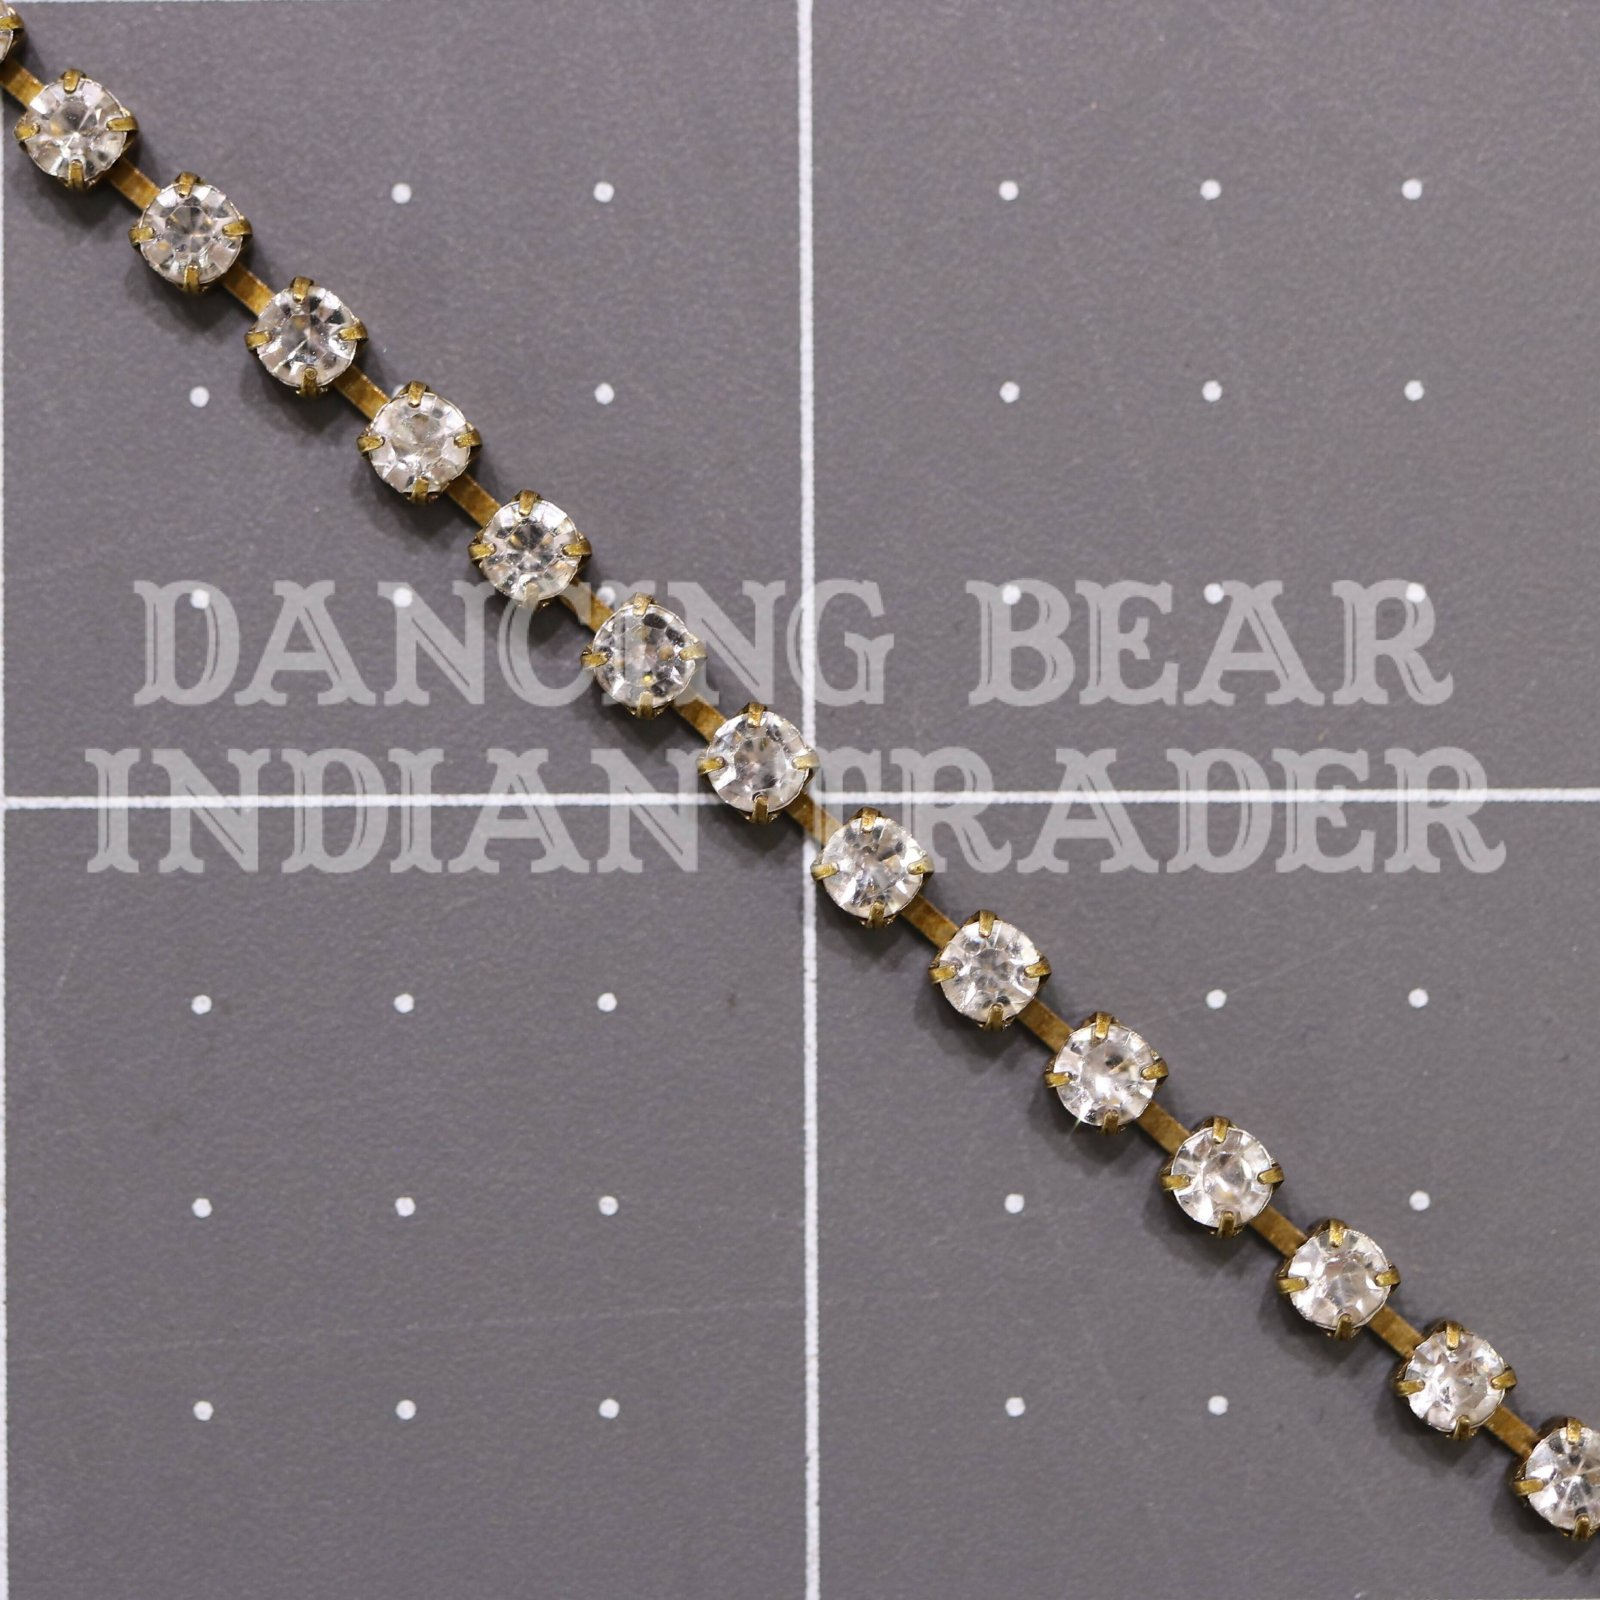 3mm Crystal Antique Brass Cup Chain per foot